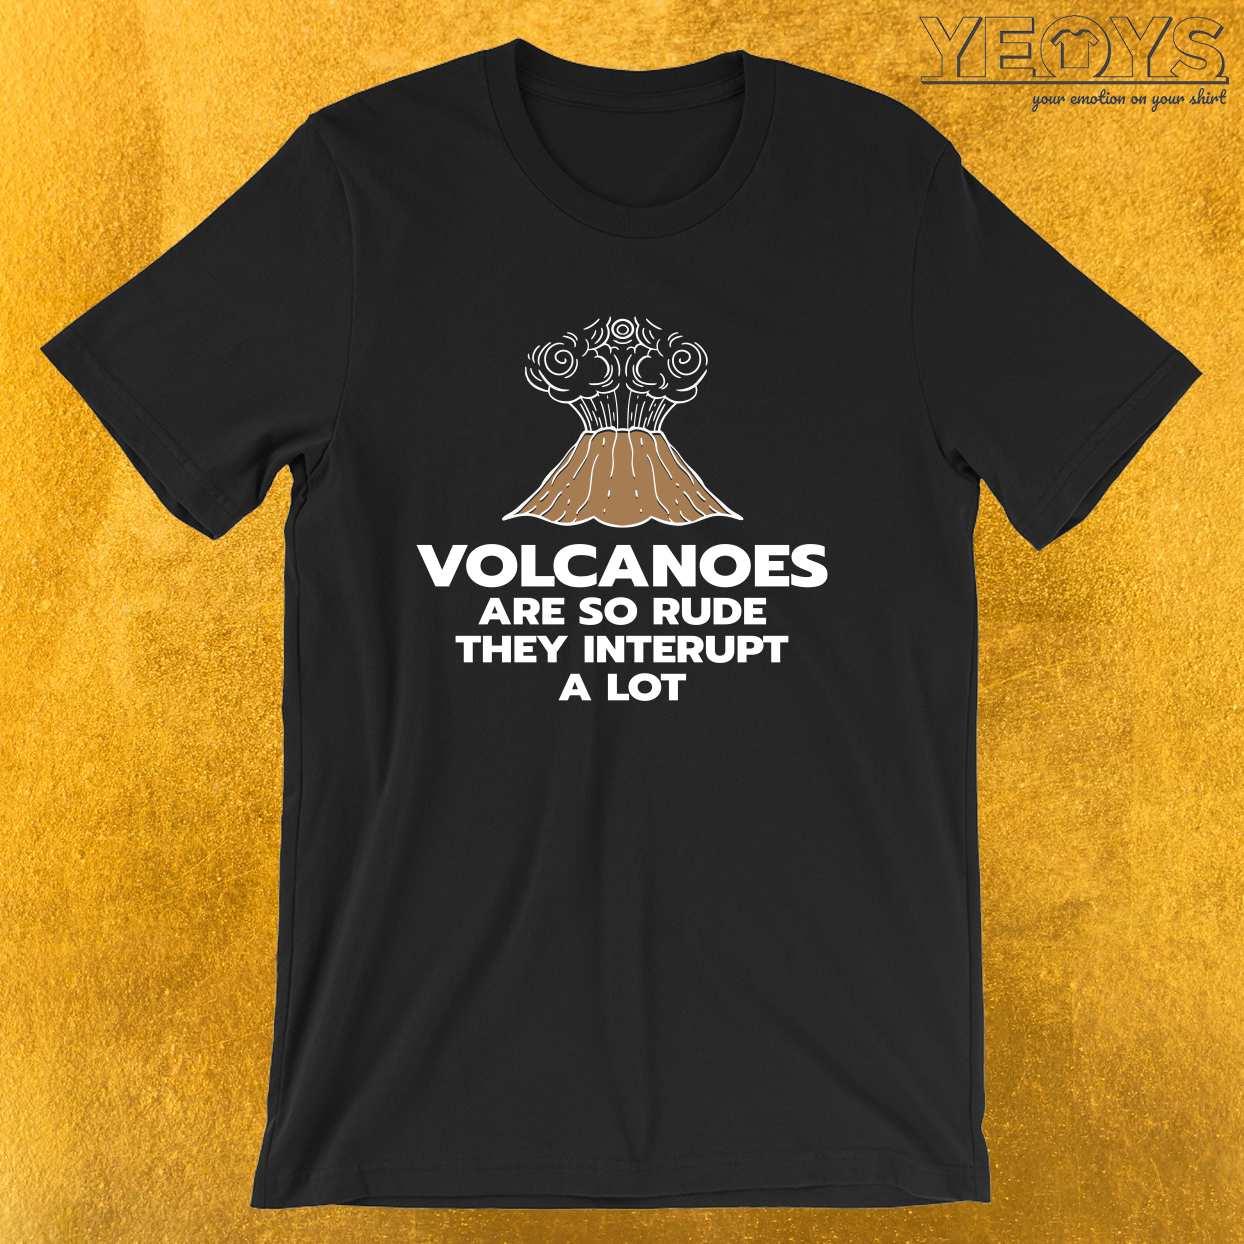 Volcanoes Are So Rude They Interupt A Lot – Funny Lava Volcano Tee